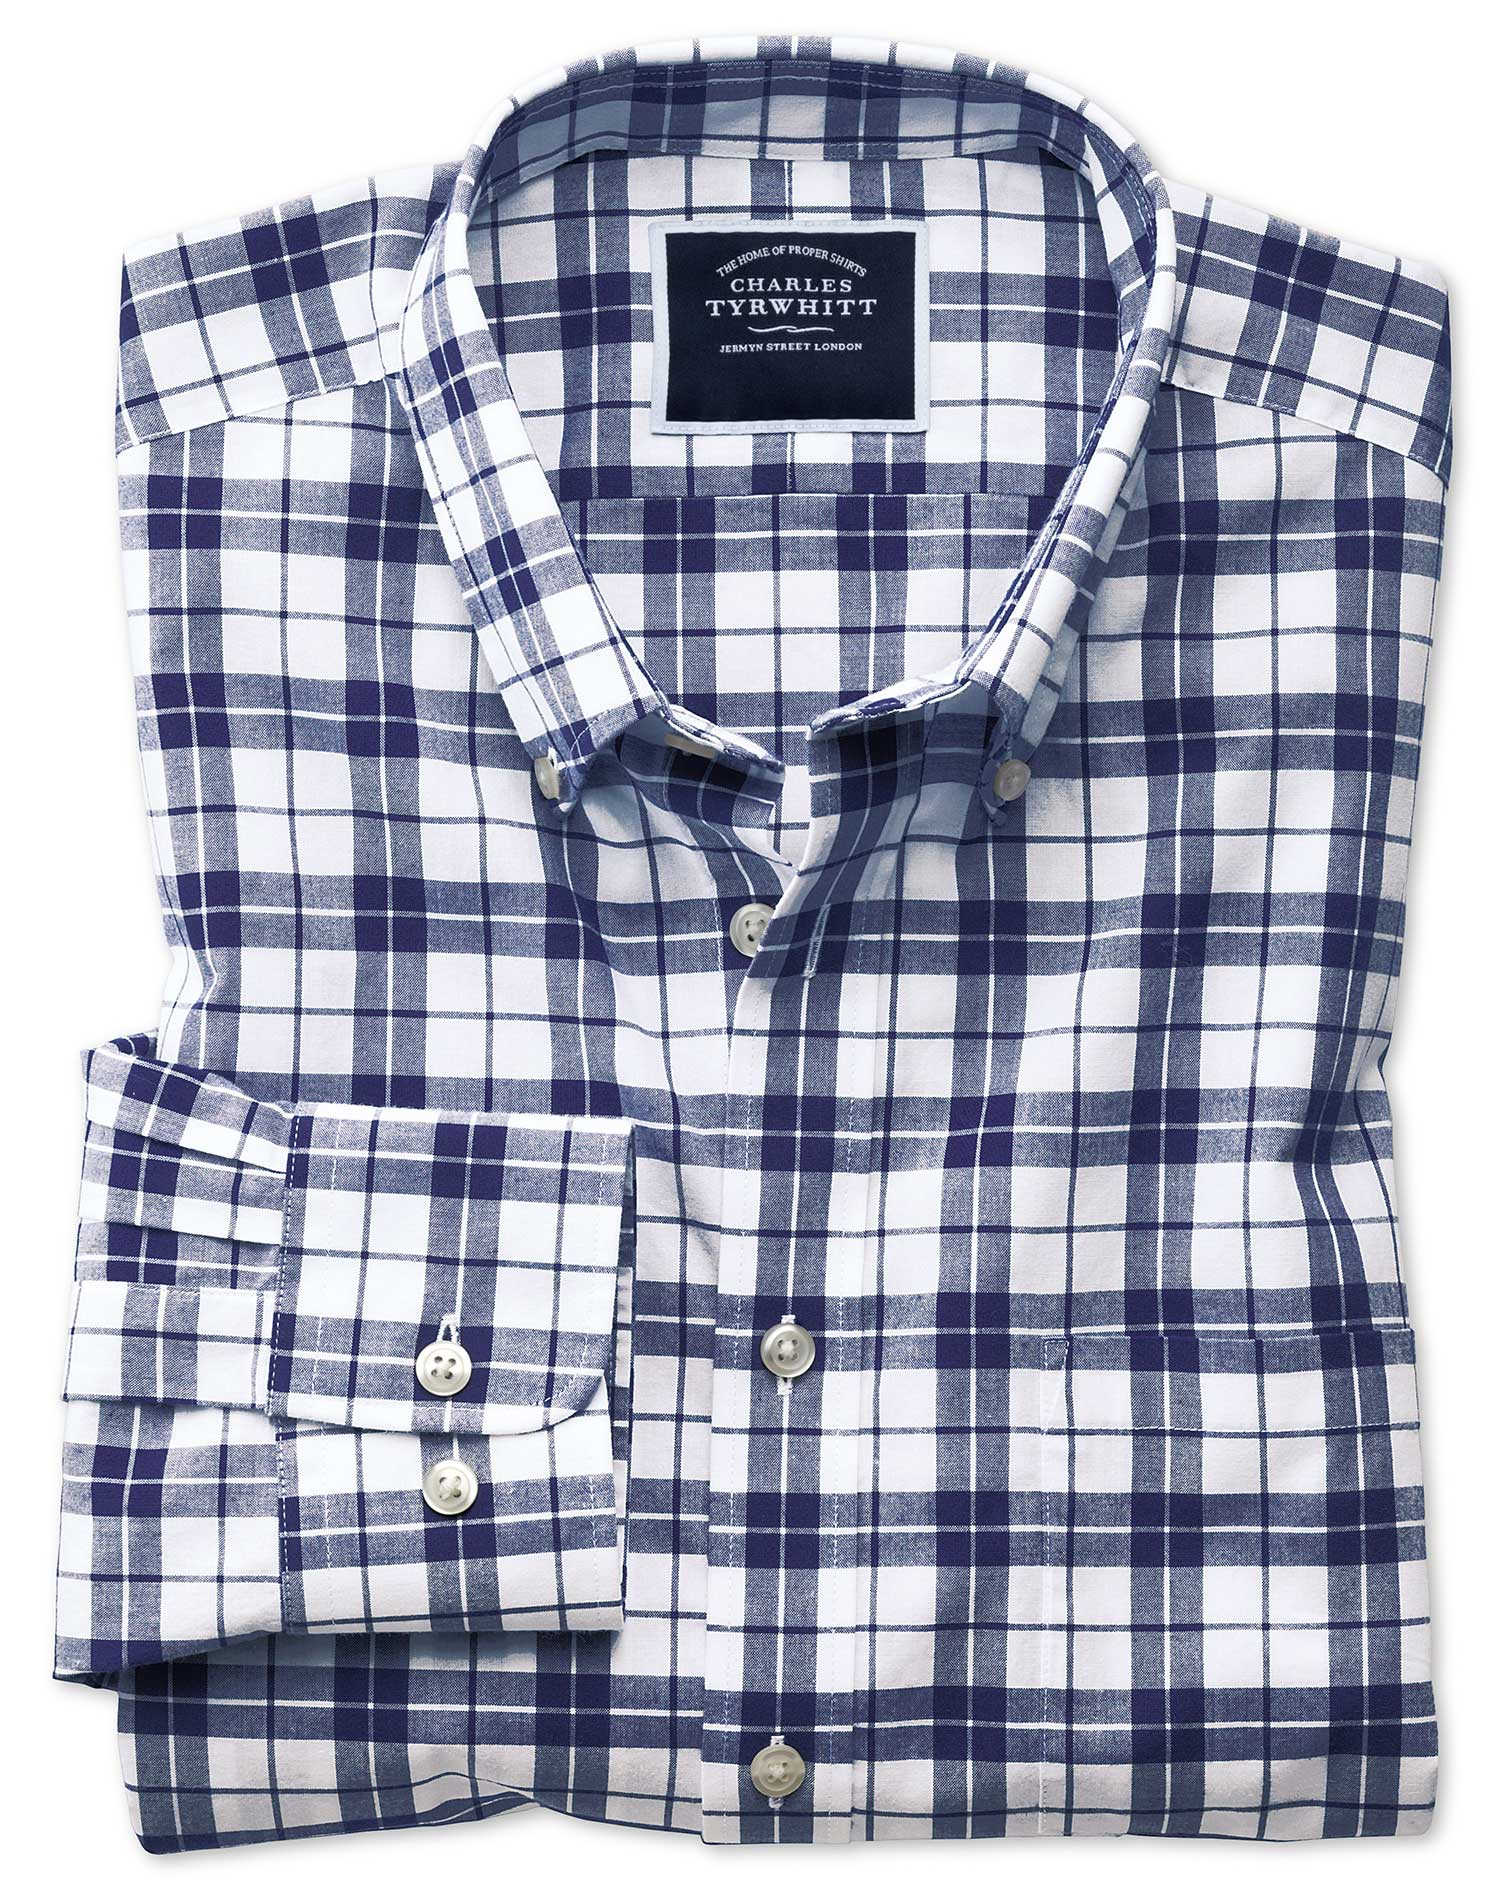 Slim Fit Poplin Navy and White Cotton Shirt Single Cuff Size Large by Charles Tyrwhitt